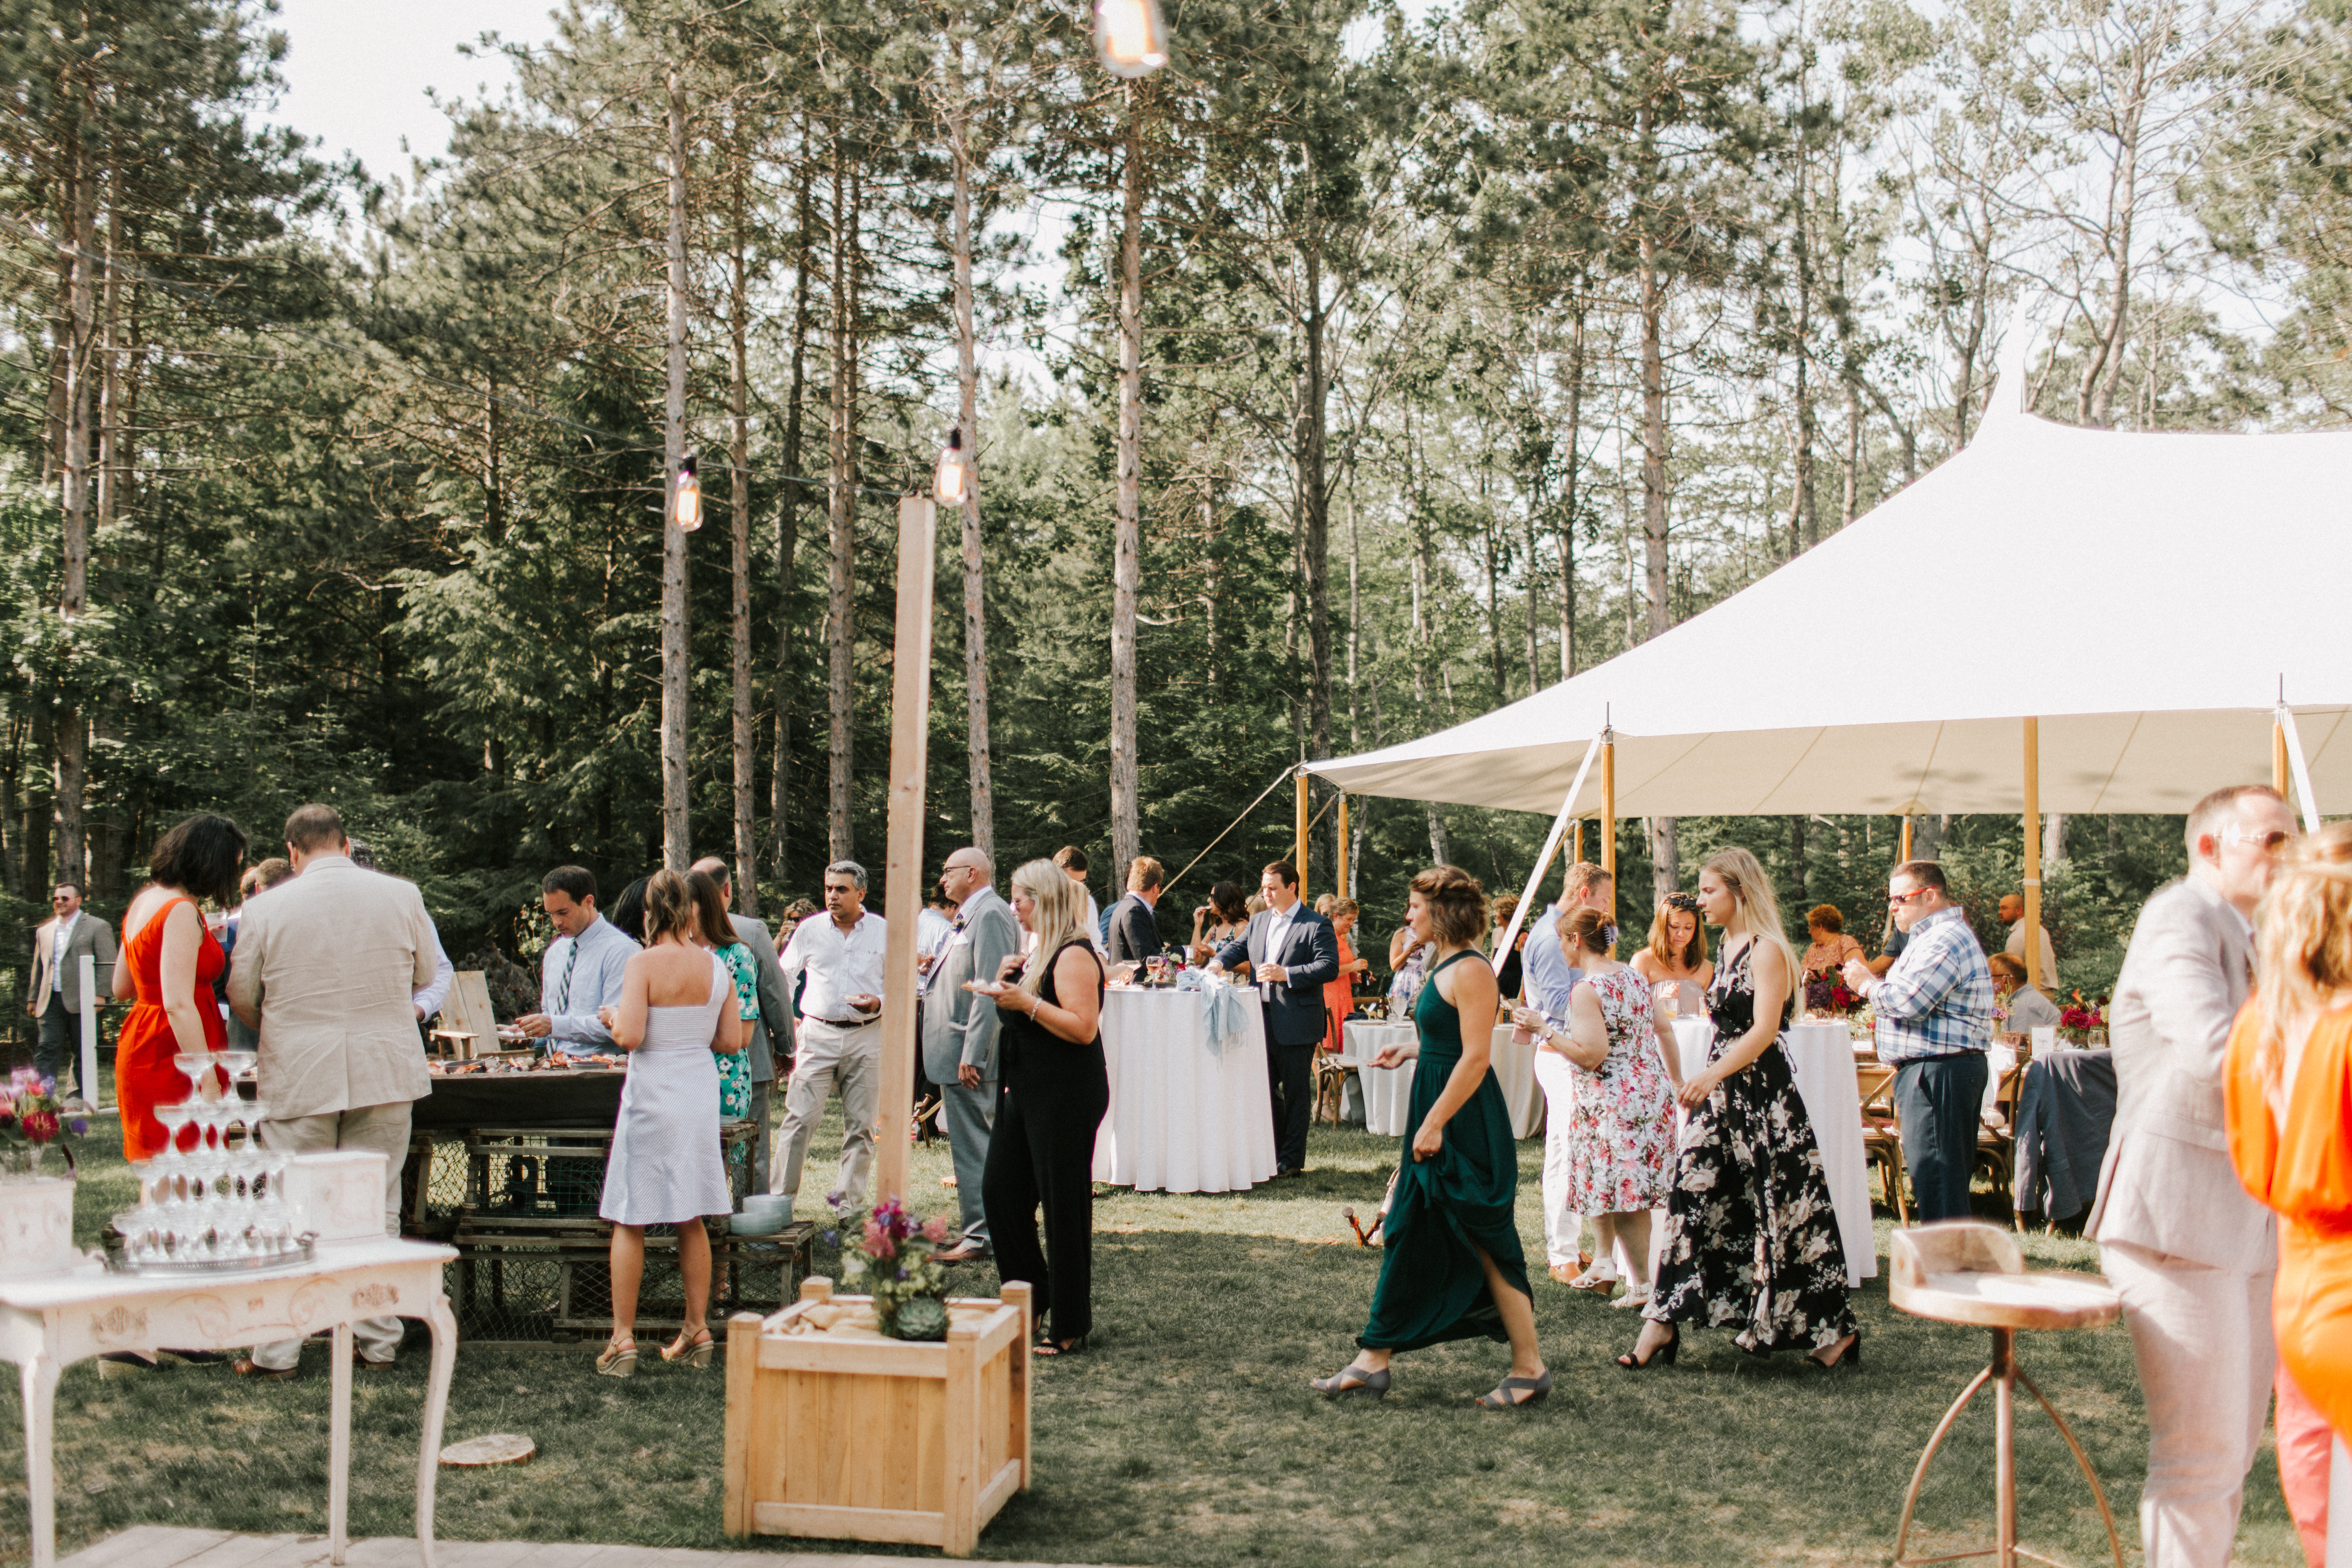 Cocktail hour at Hidden Pond wedding in Kennebunkport, Maine